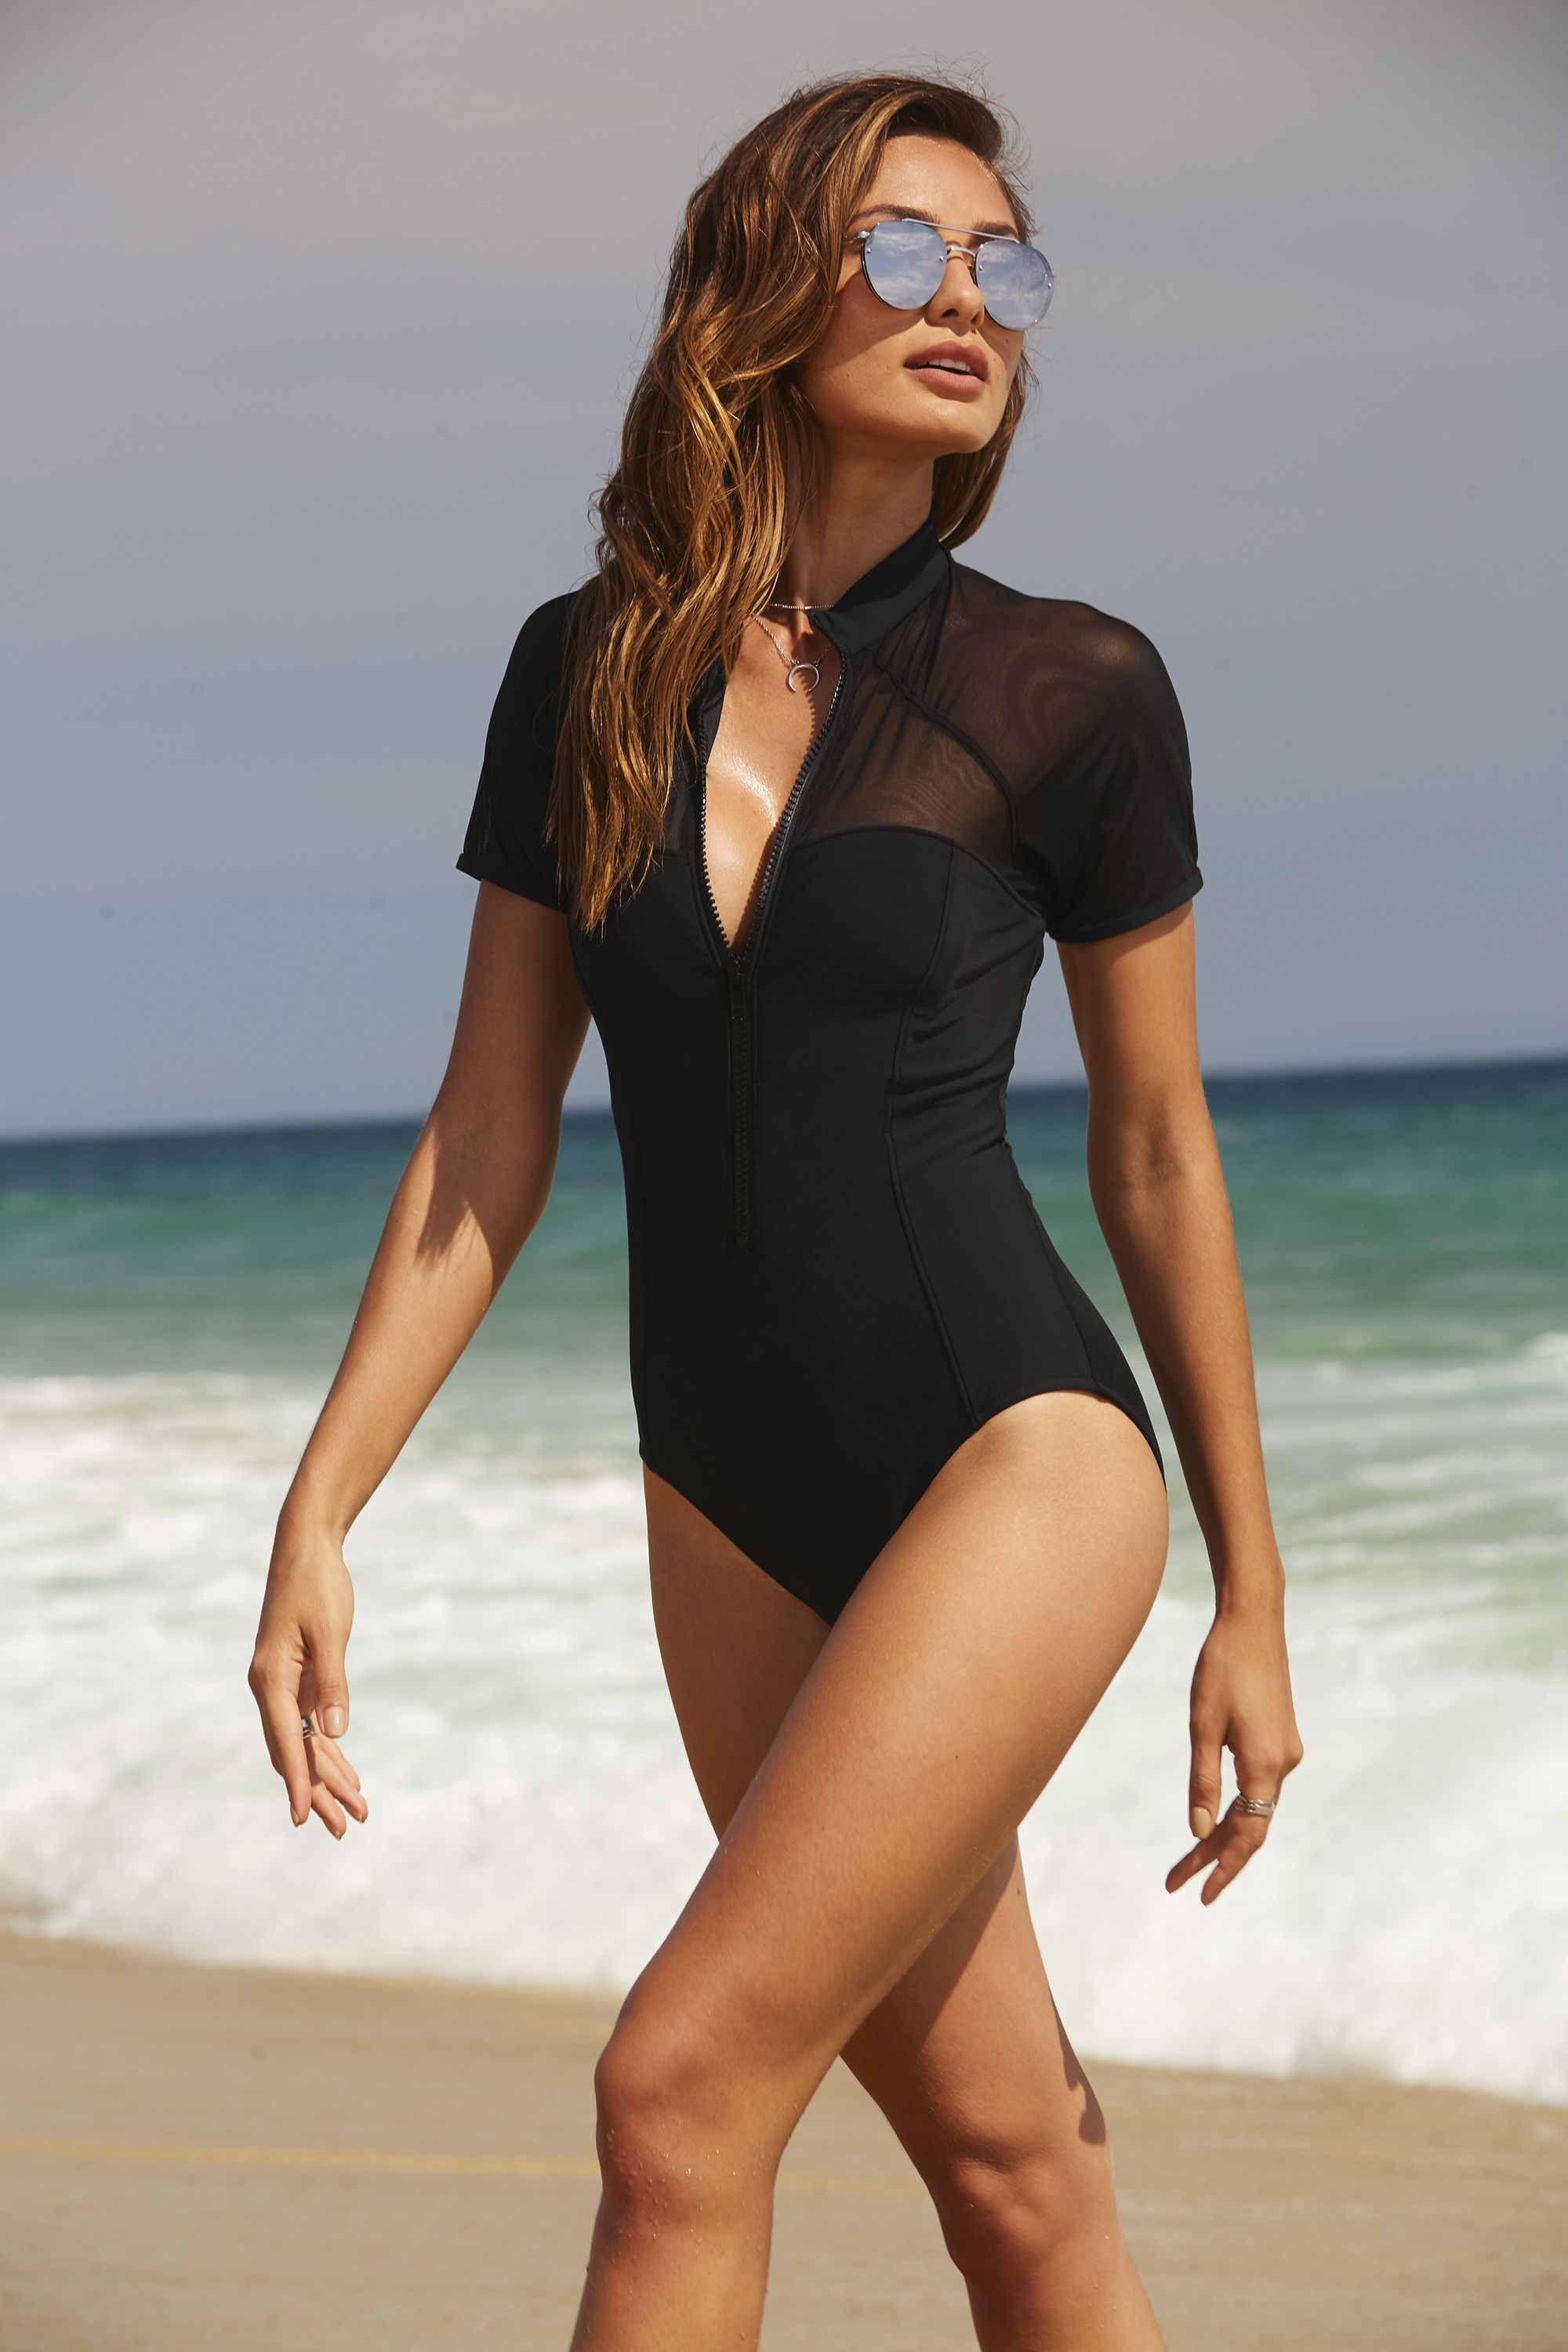 2231b10cb1151 Women's Short Sleeve Mesh One Piece Swimsuit by Boston Proper. Our latest  collection of swim has just arrived, and we're in love!